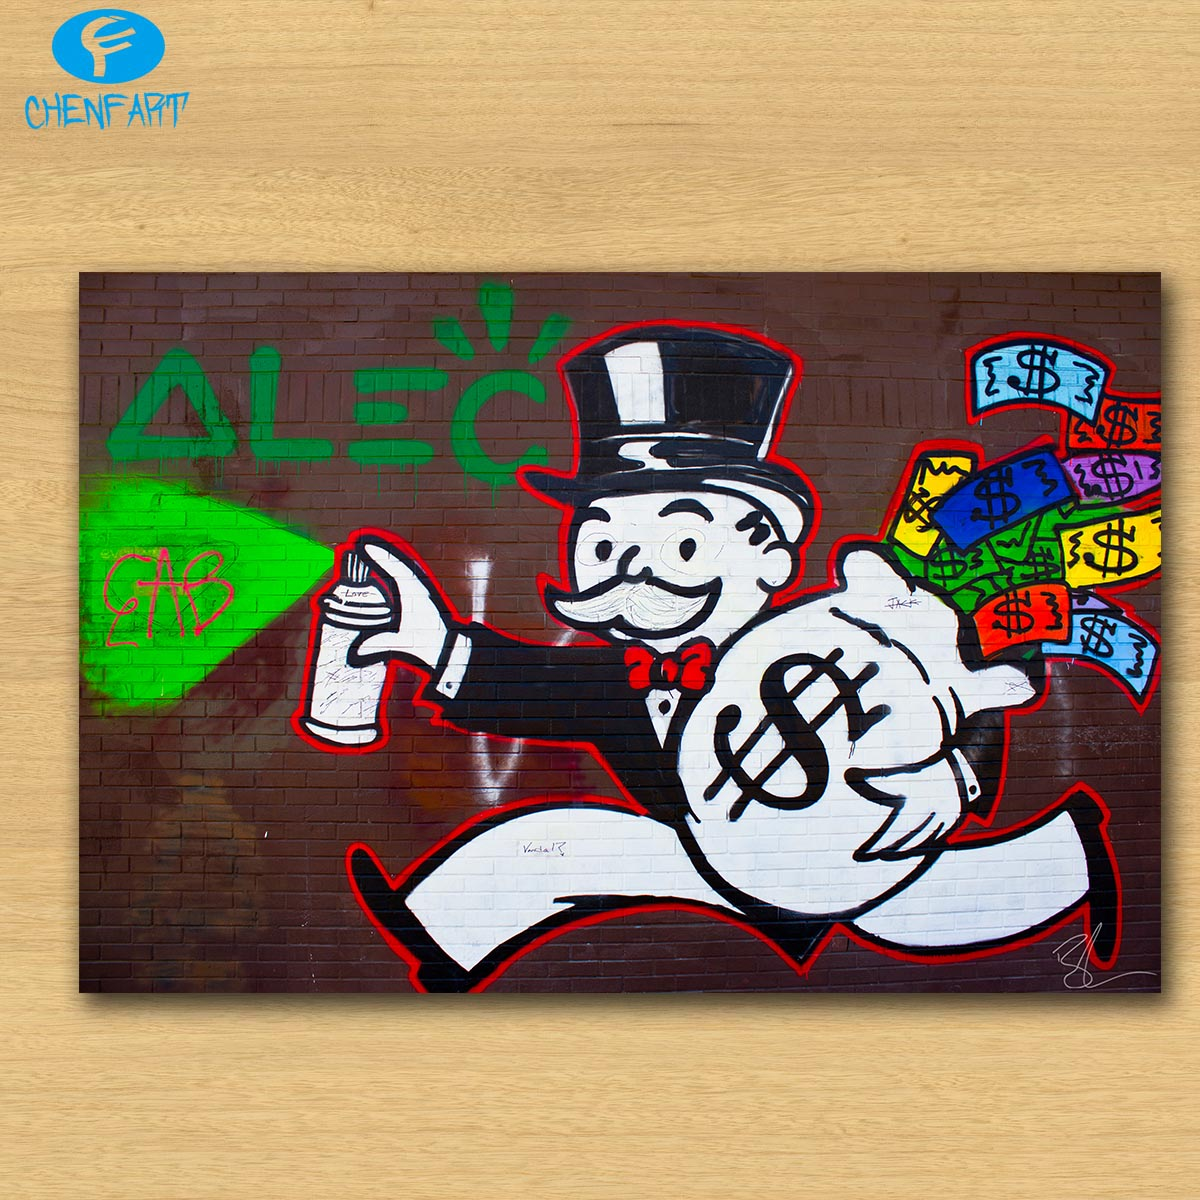 Graffiti wall art bedroom - Alec Monopoly Melrose Ave Wall Street Graffiti Print Canvas For Wall Art Decoration Oil Painting Wall Painting Picture No Frame In Painting Calligraphy